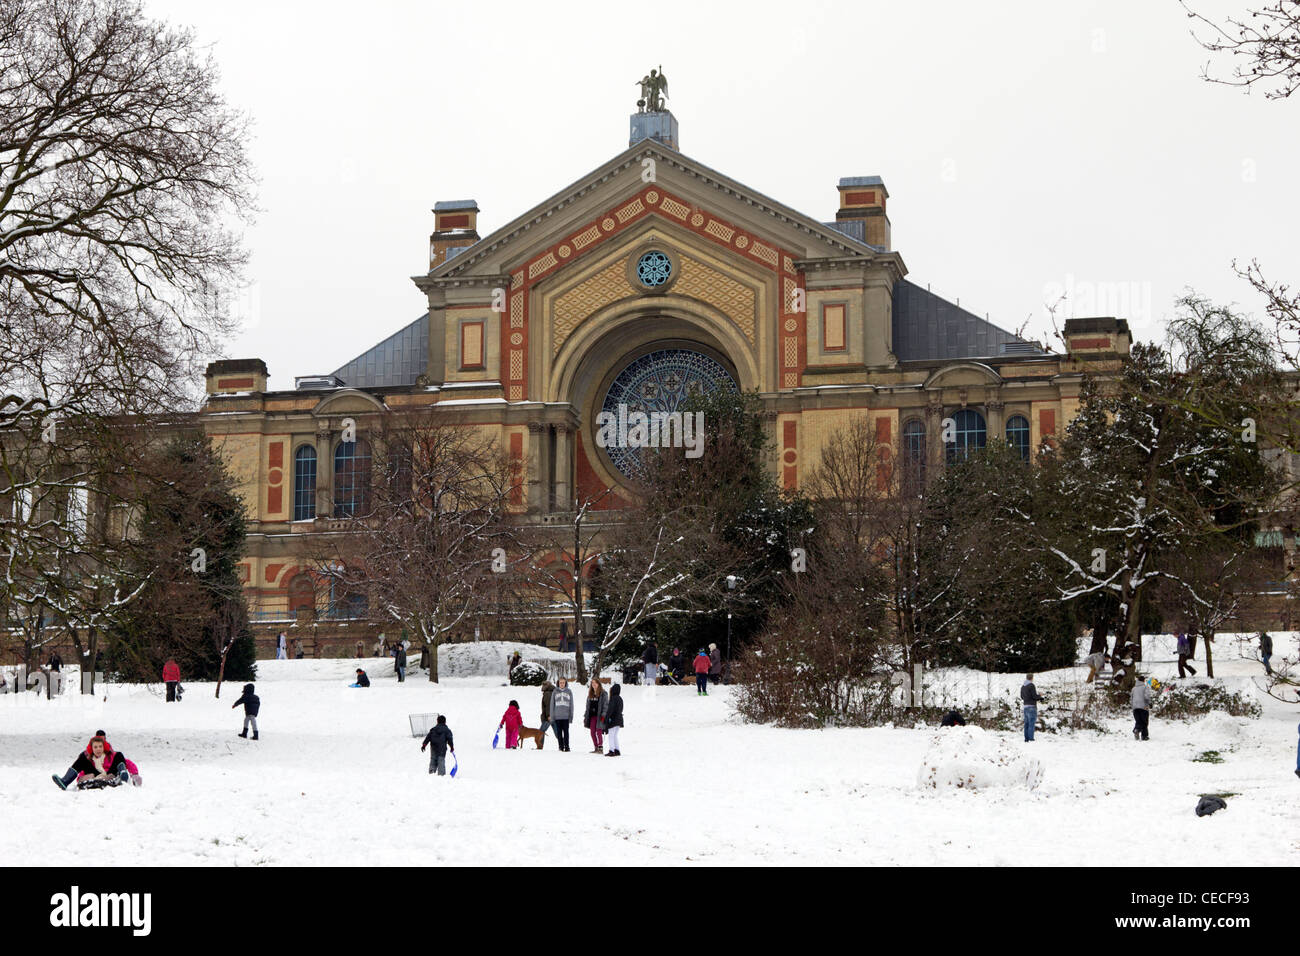 Winter Alexandra Palace - Haringey - London - Stock Image